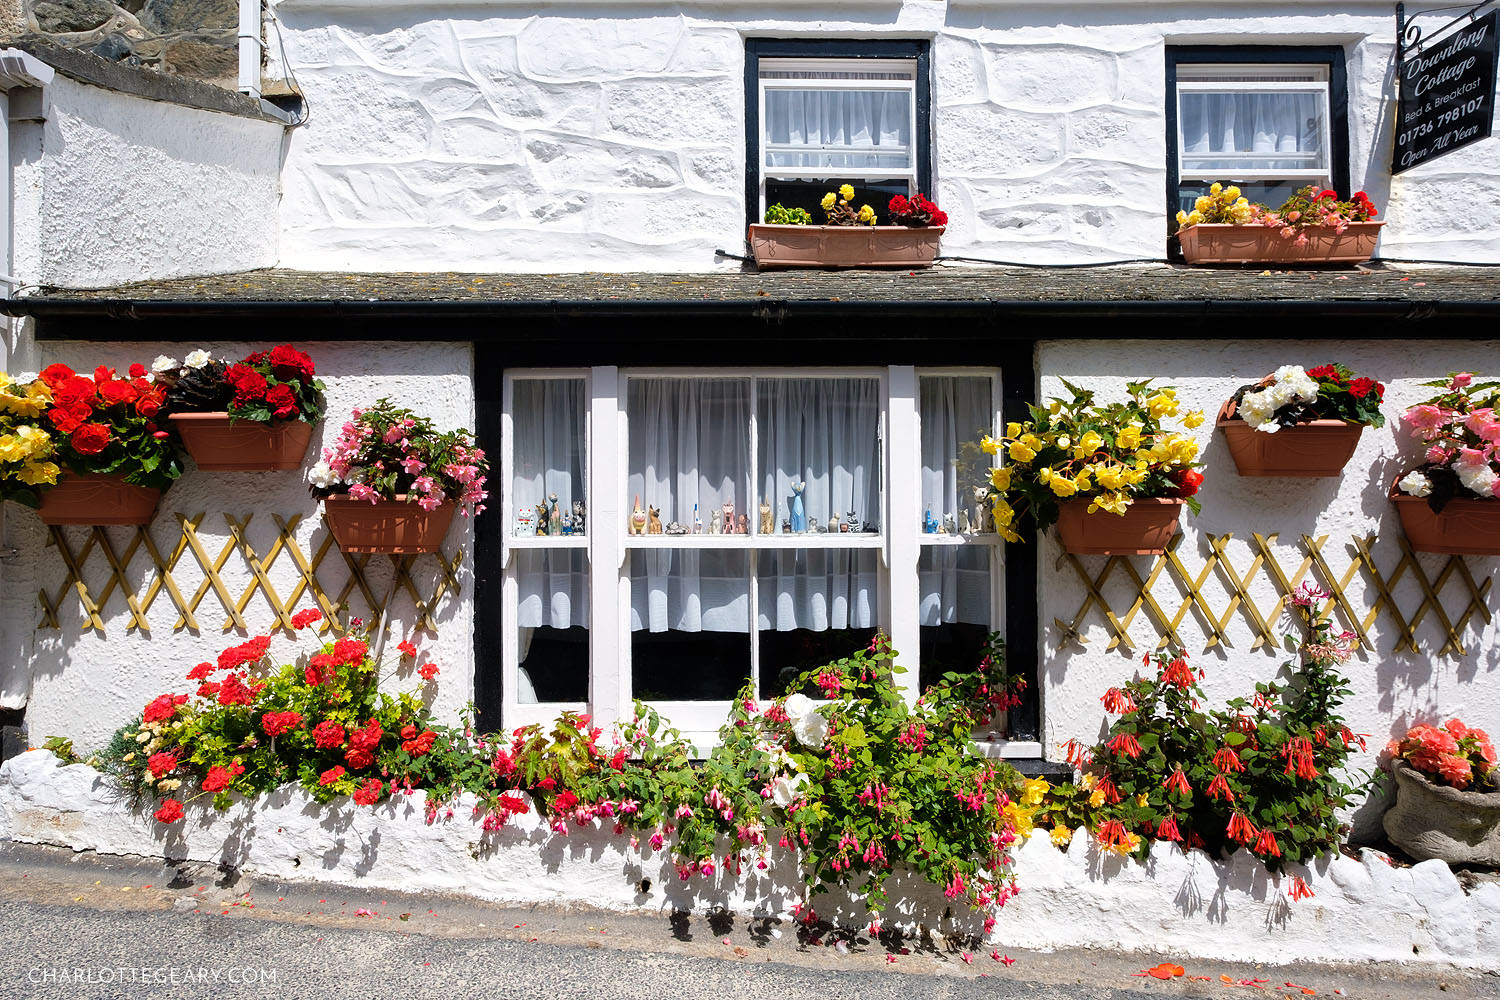 House in St. Ives, Cornwall, England